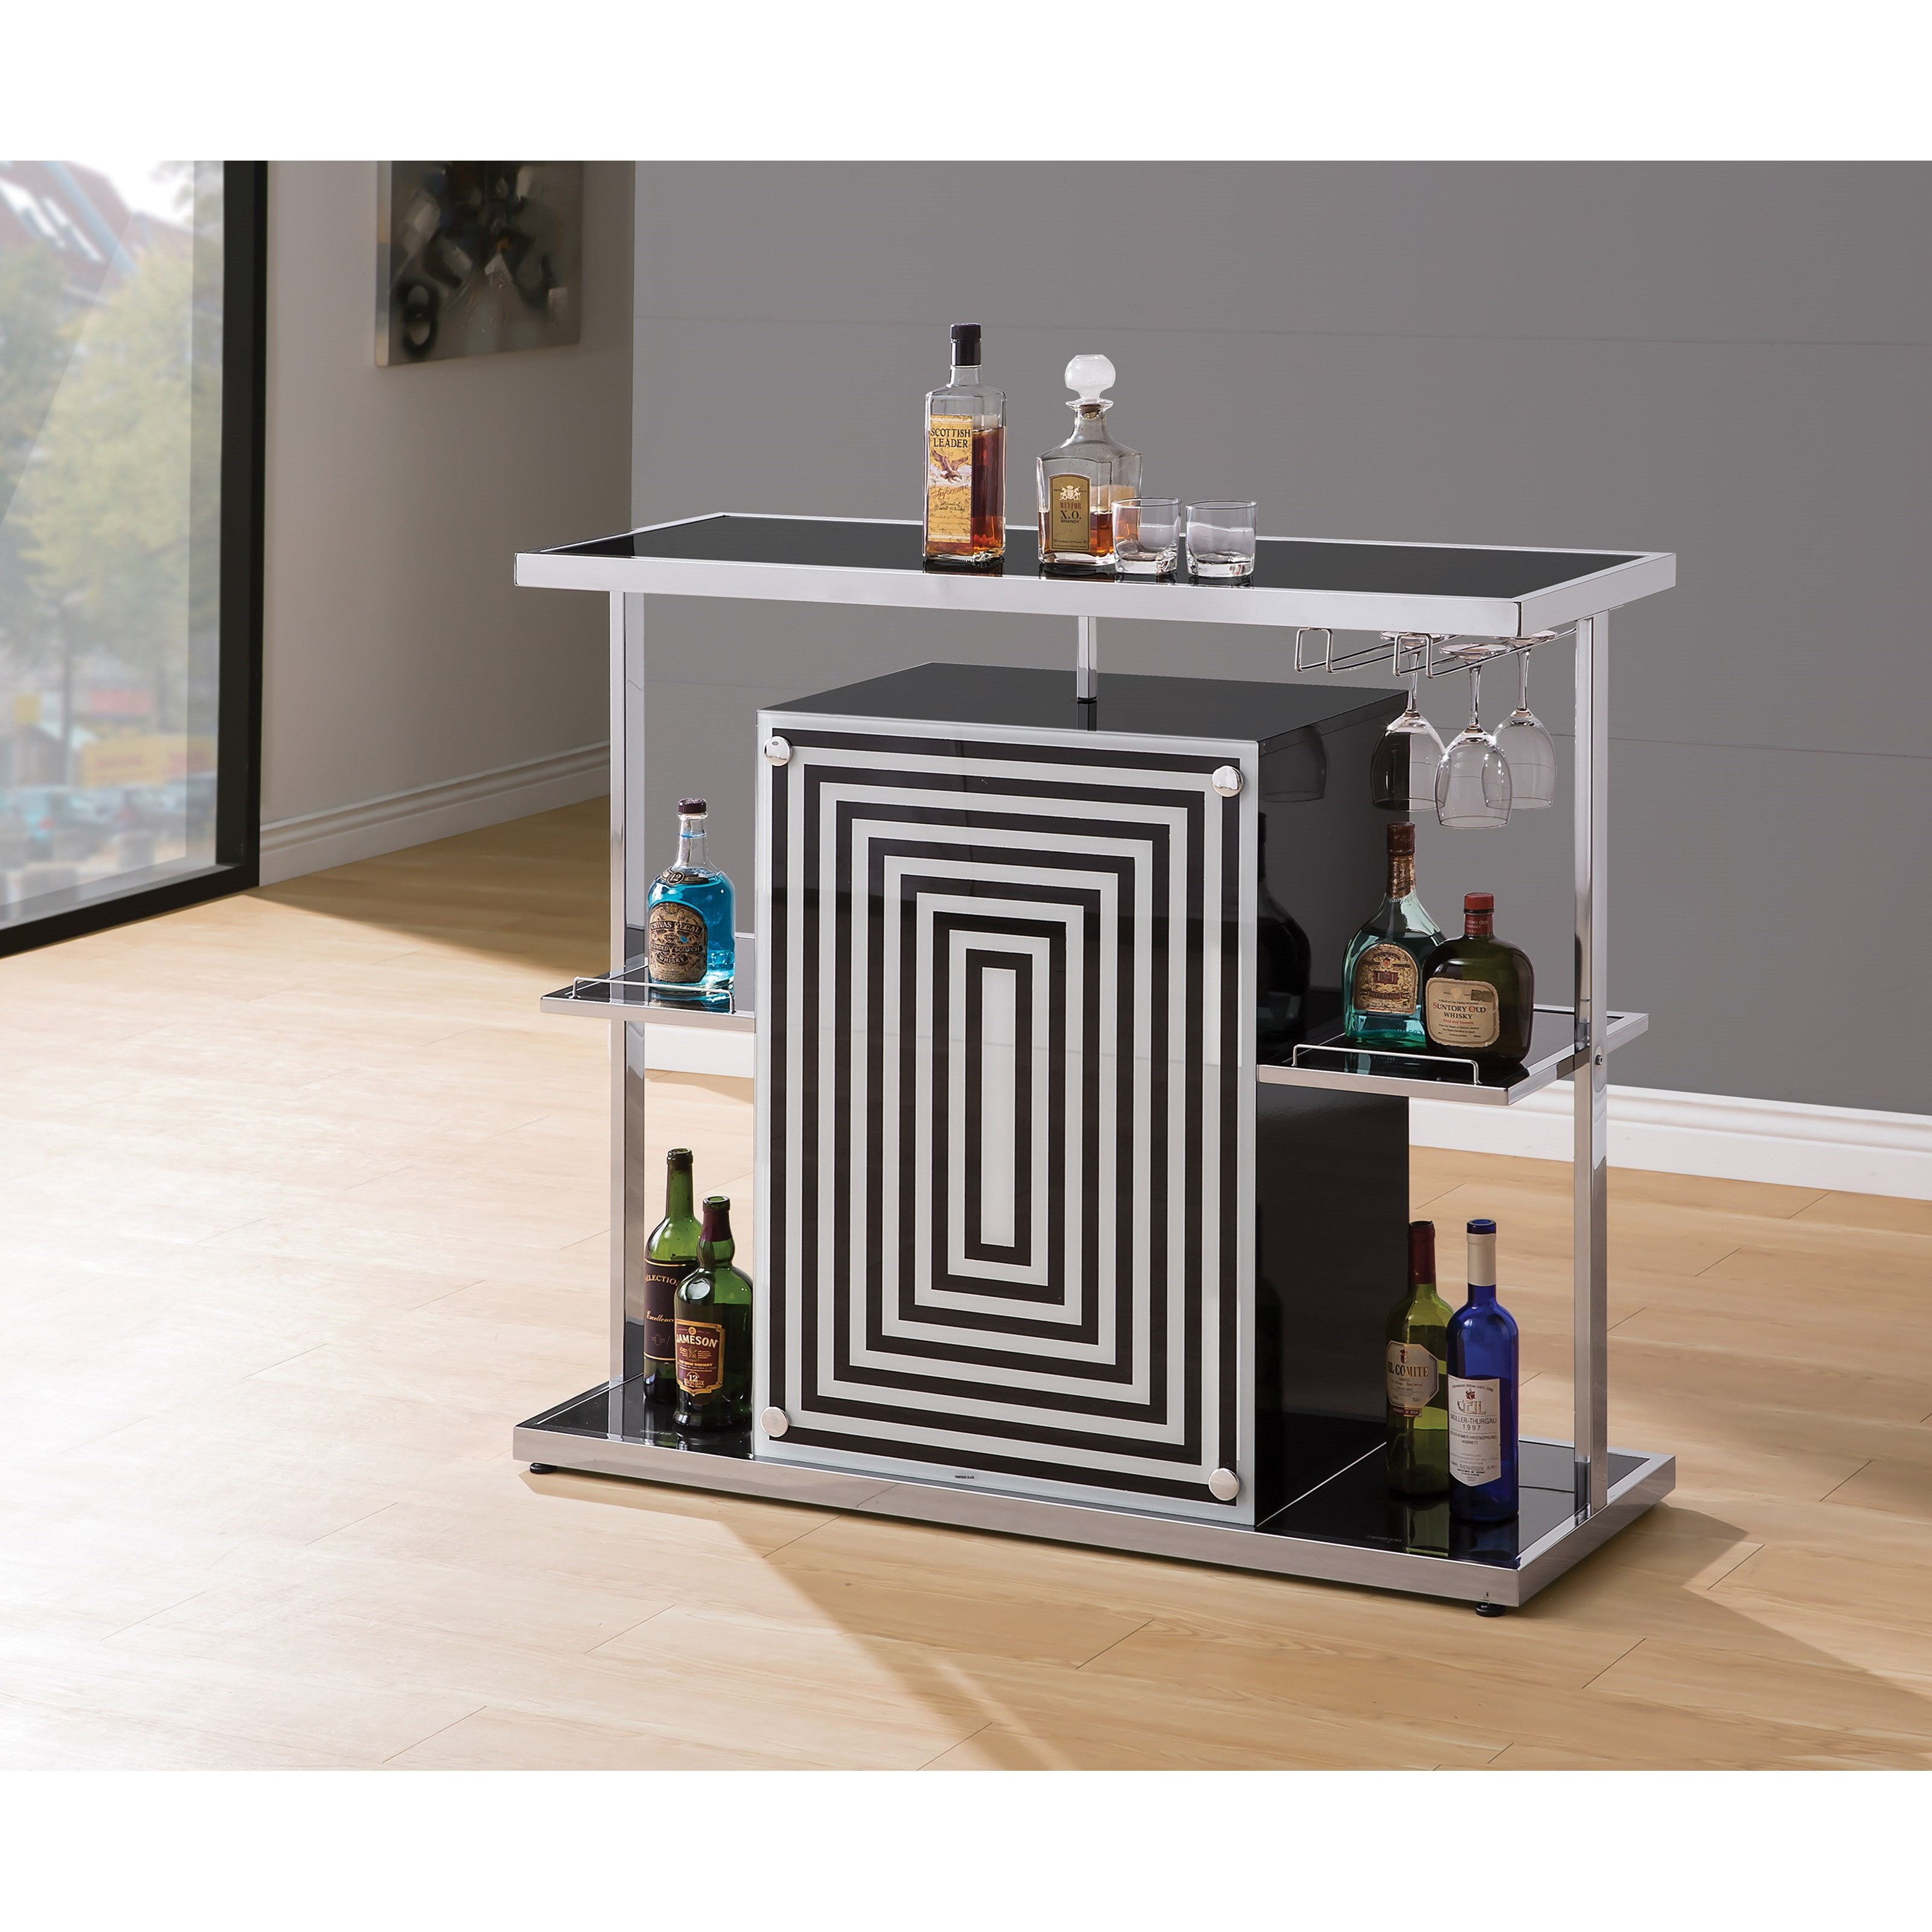 Radiating Bar Unit Contemporary Bar With Wine Glass